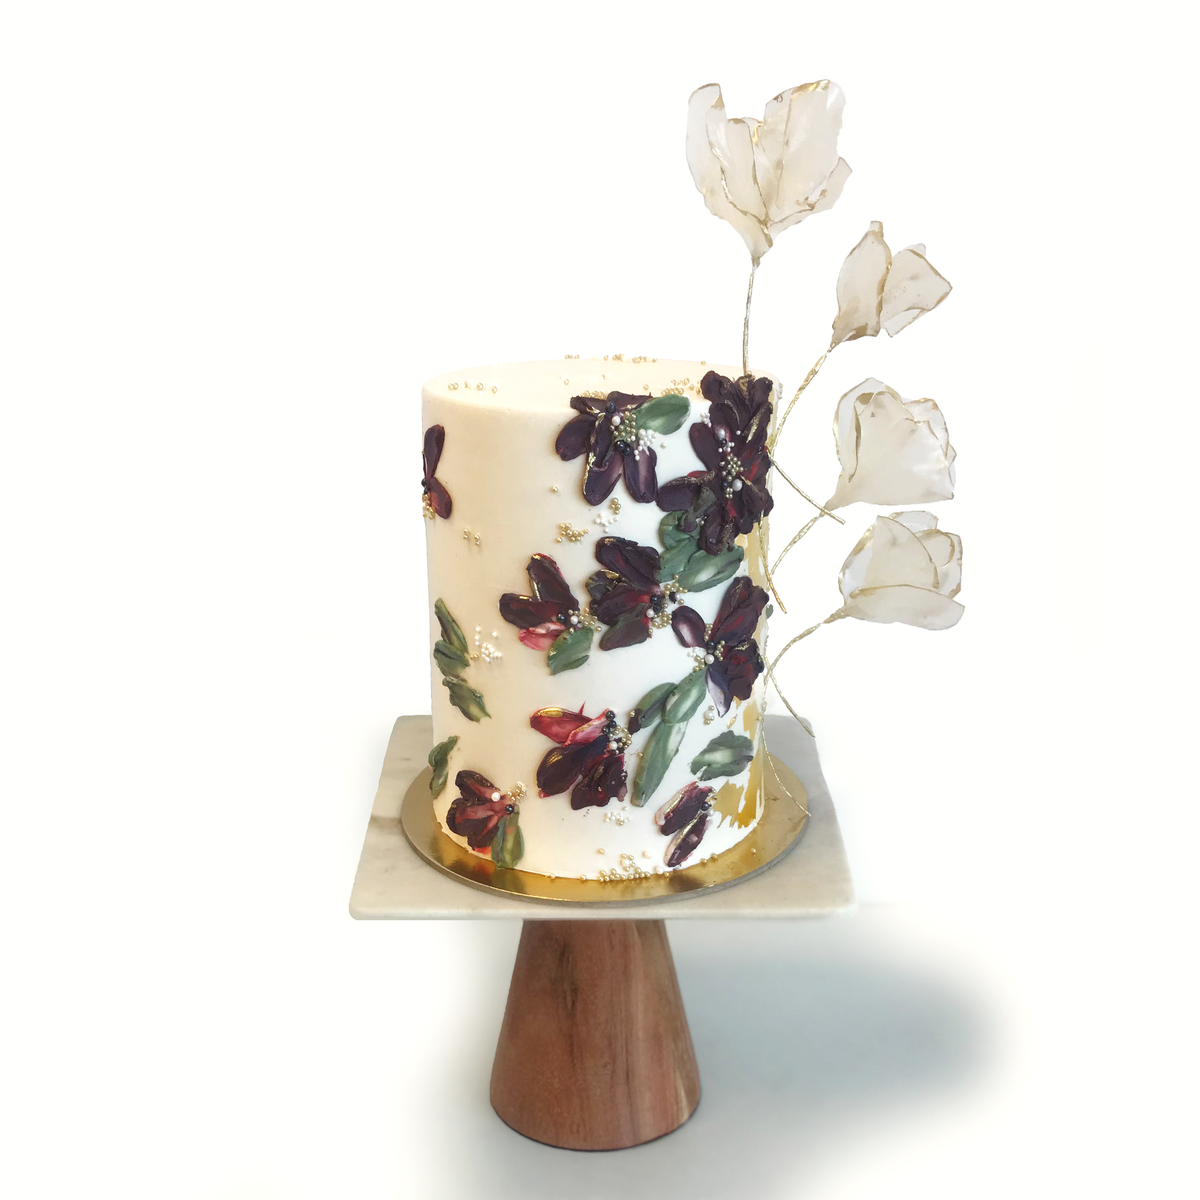 Whippt Auction Cake Oct 10, 2019 2